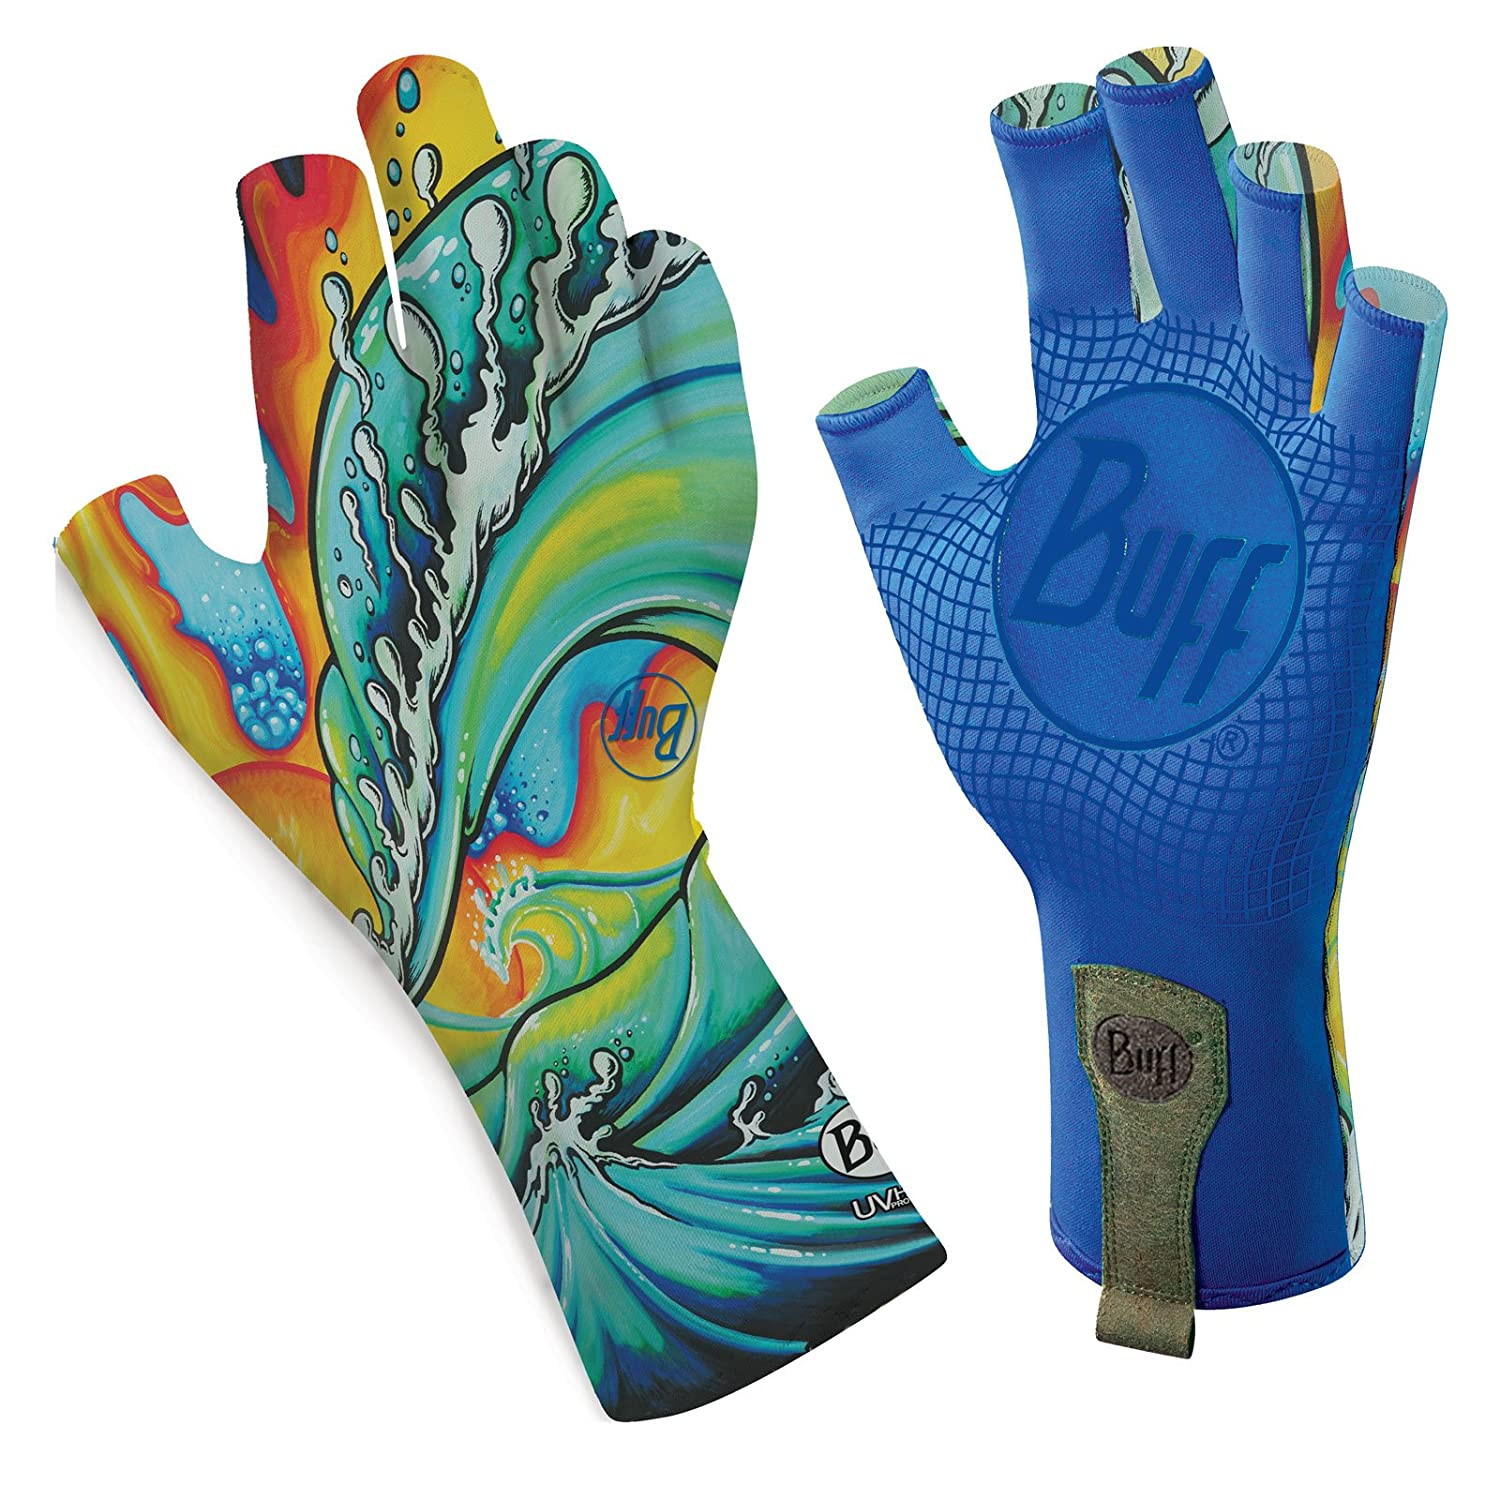 Best fly fishing gifts for men 2015 for Buff fishing gloves